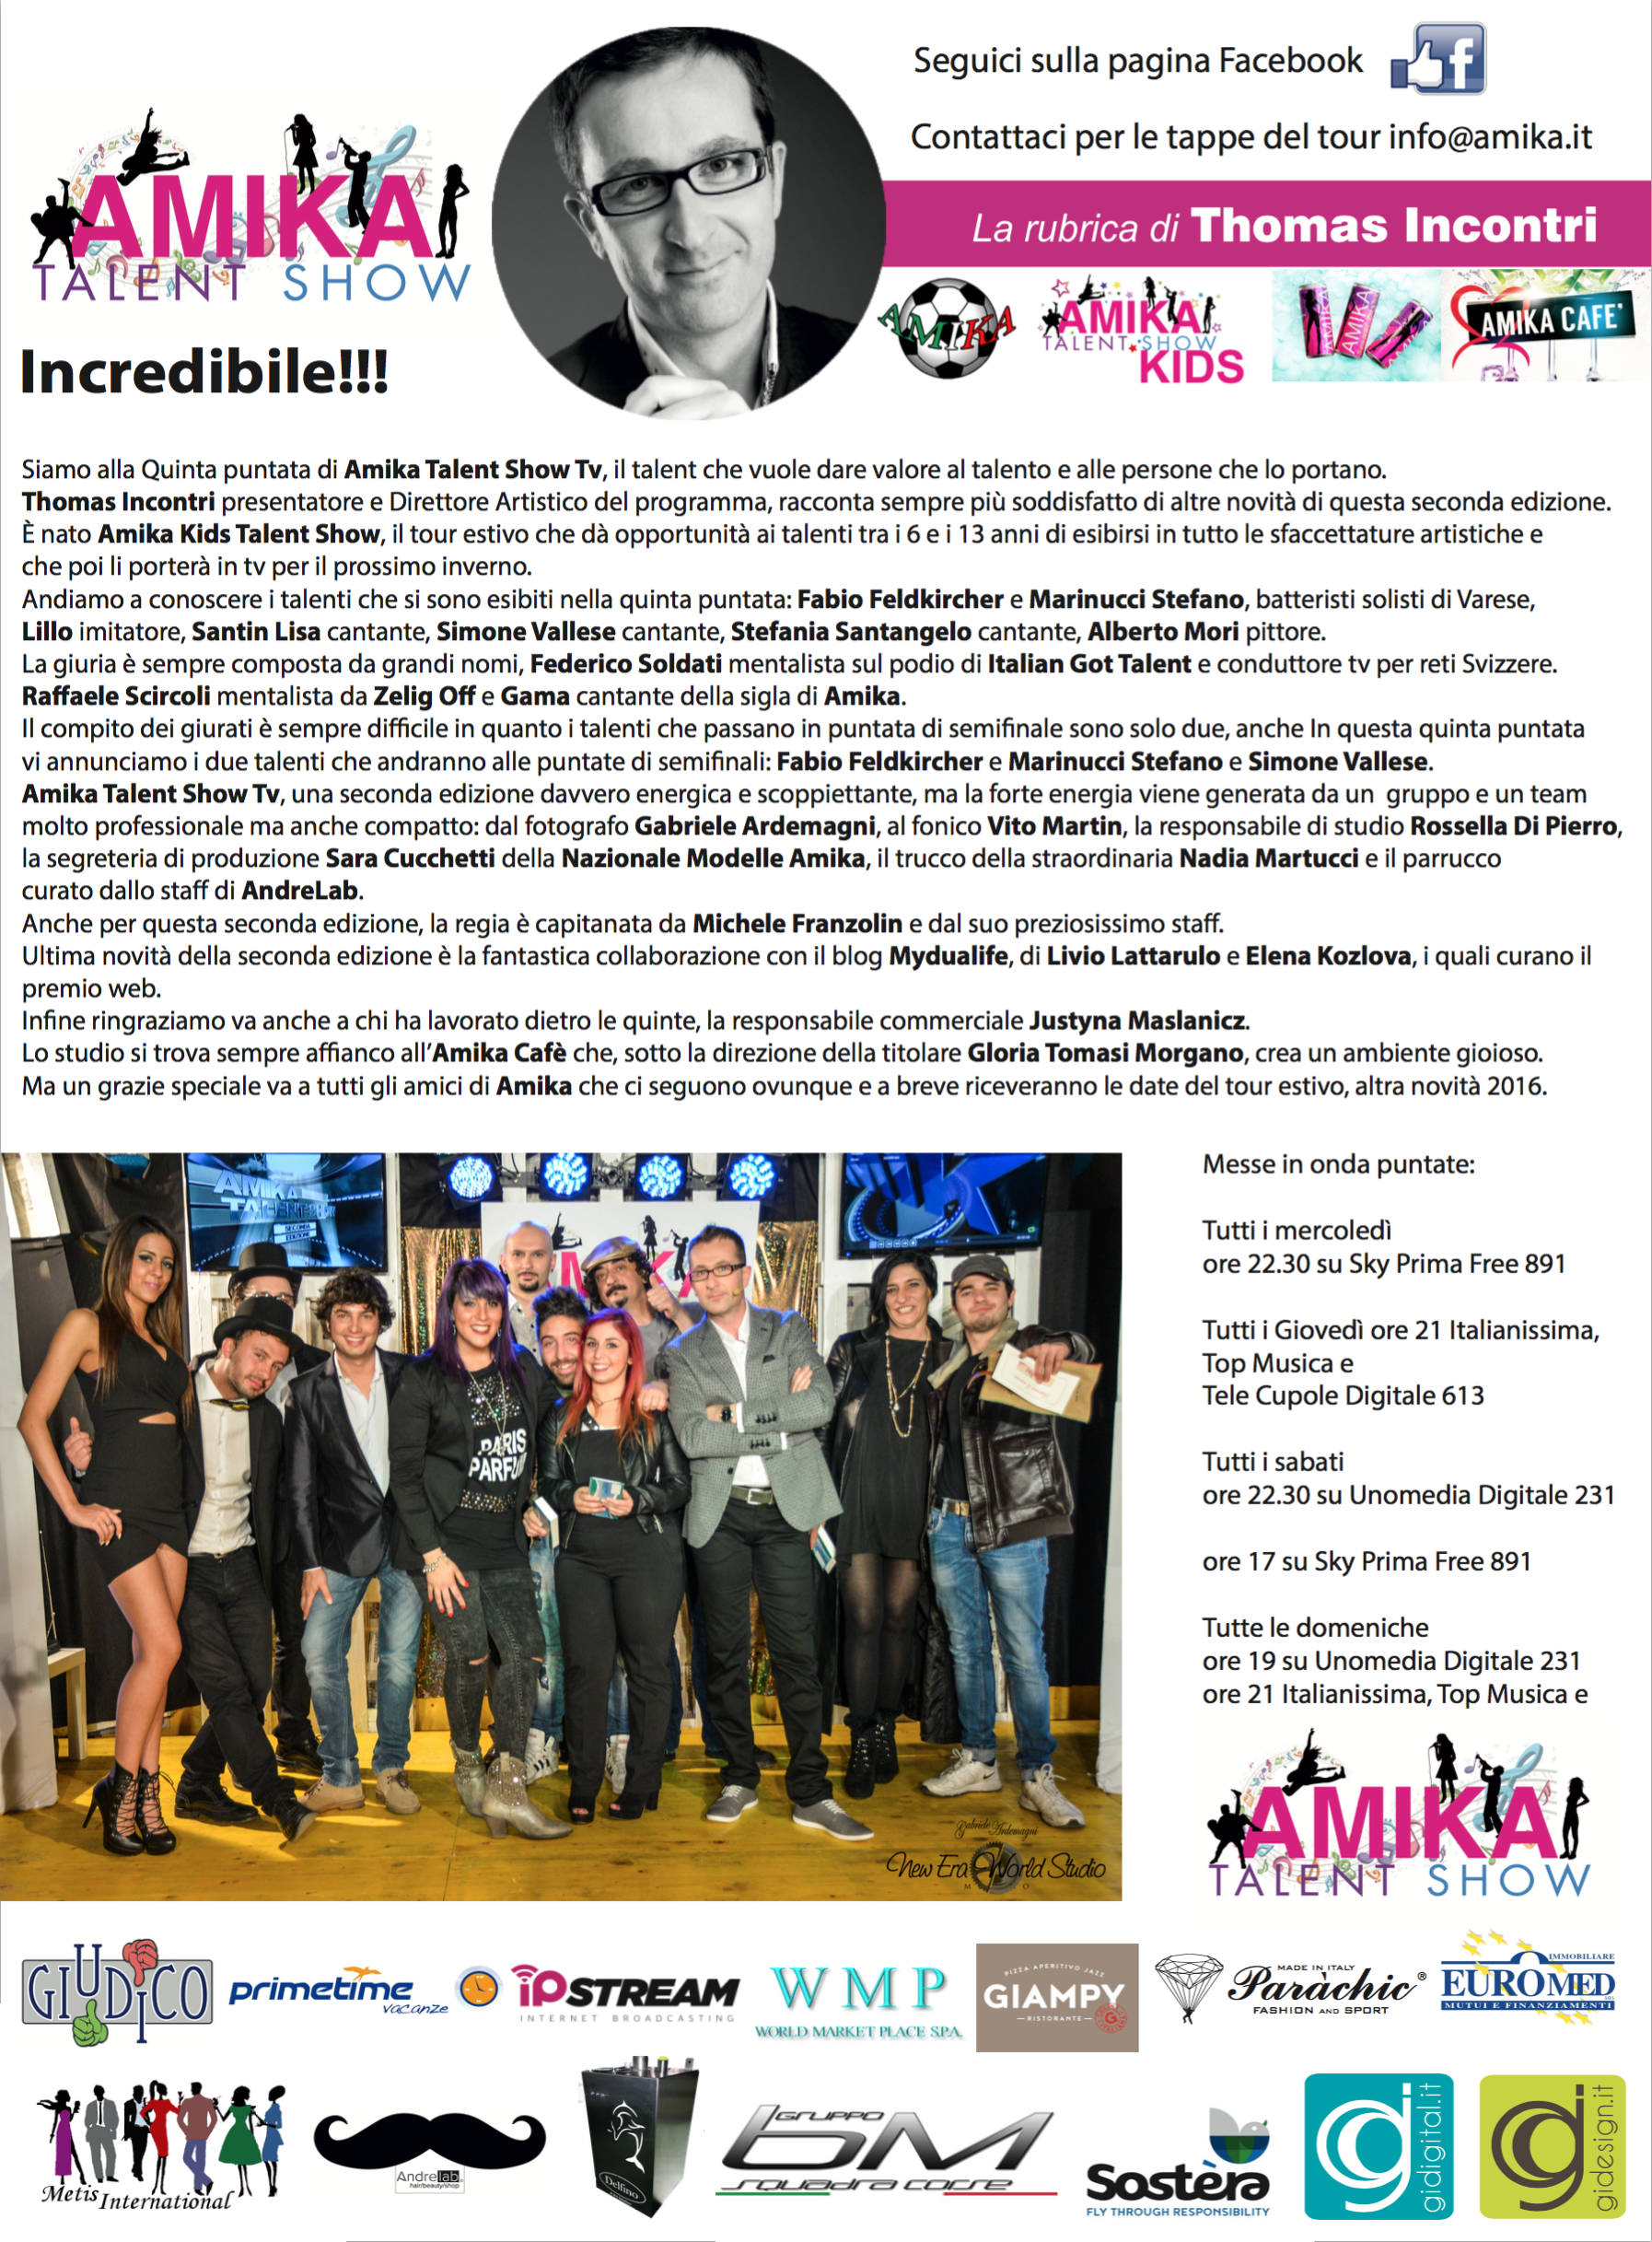 Vip 2016 Amika Talent Show 5 Foto by Gabriele ArdemagniVip 2016 Amika Talent Show 5 Foto by Gabriele Ardemagni